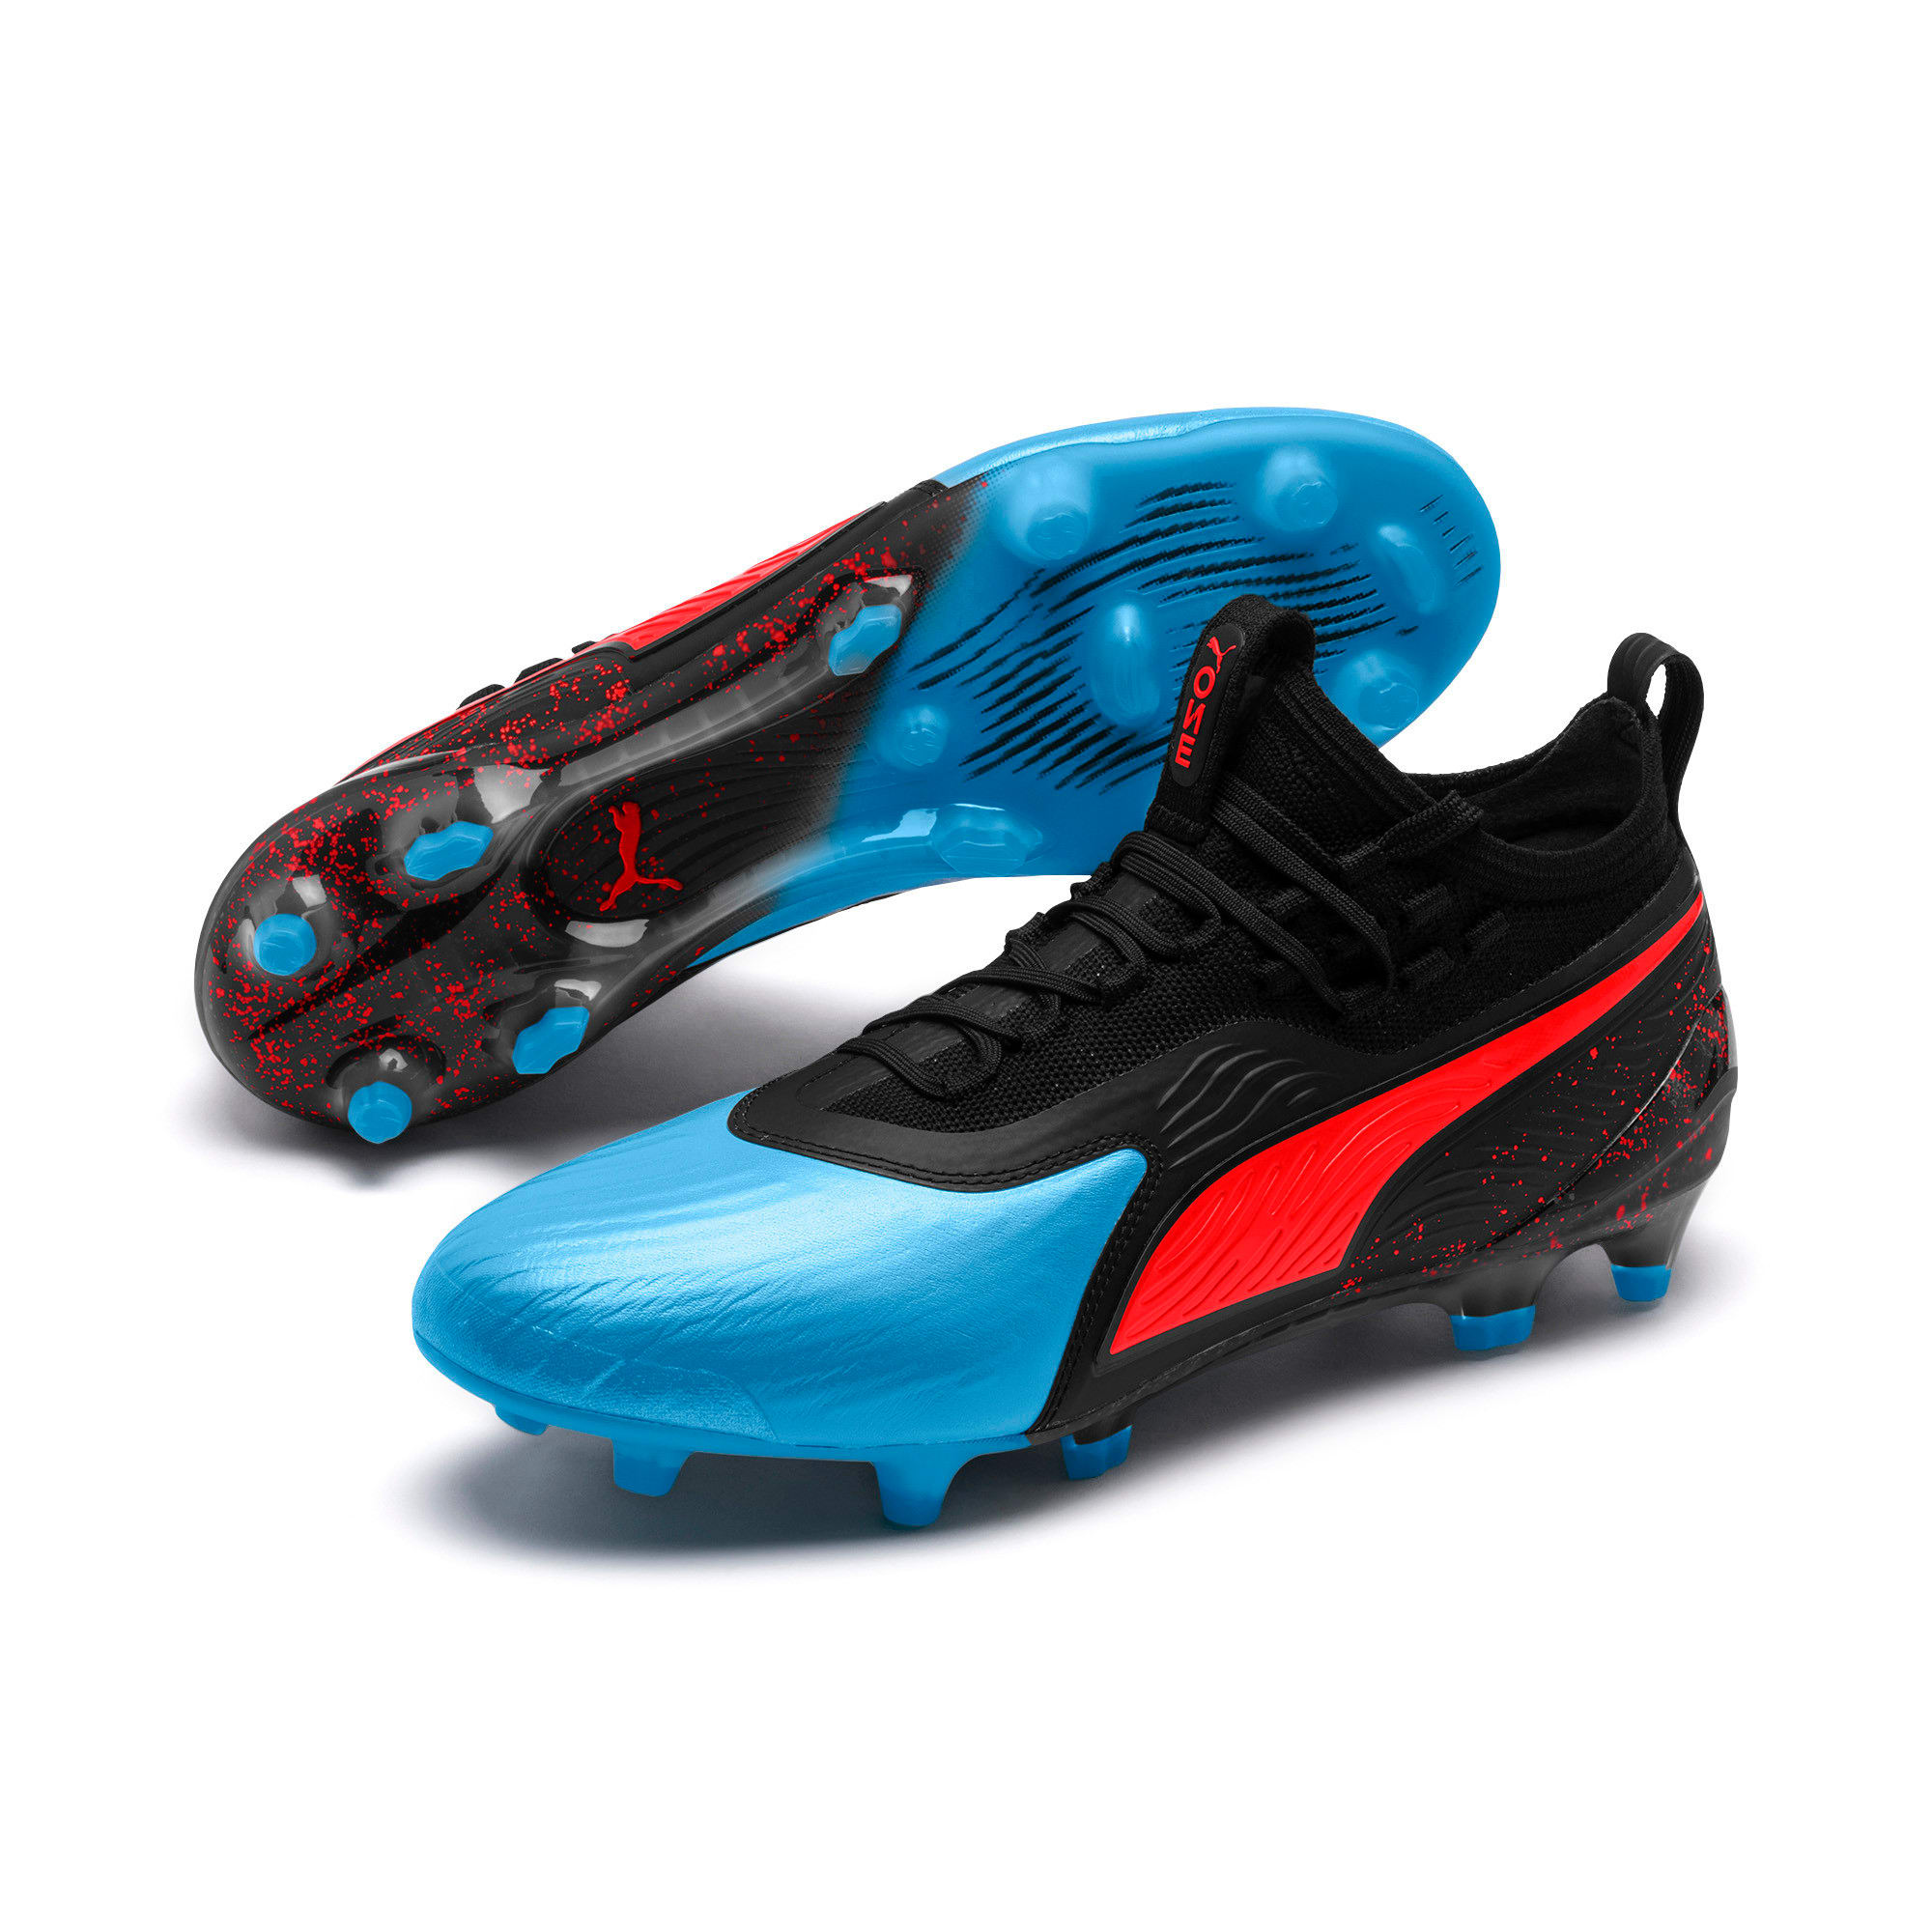 Thumbnail 3 of PUMA ONE 19.1 FG/AG Men's Soccer Cleats, Bleu Azur-Red Blast-Black, medium